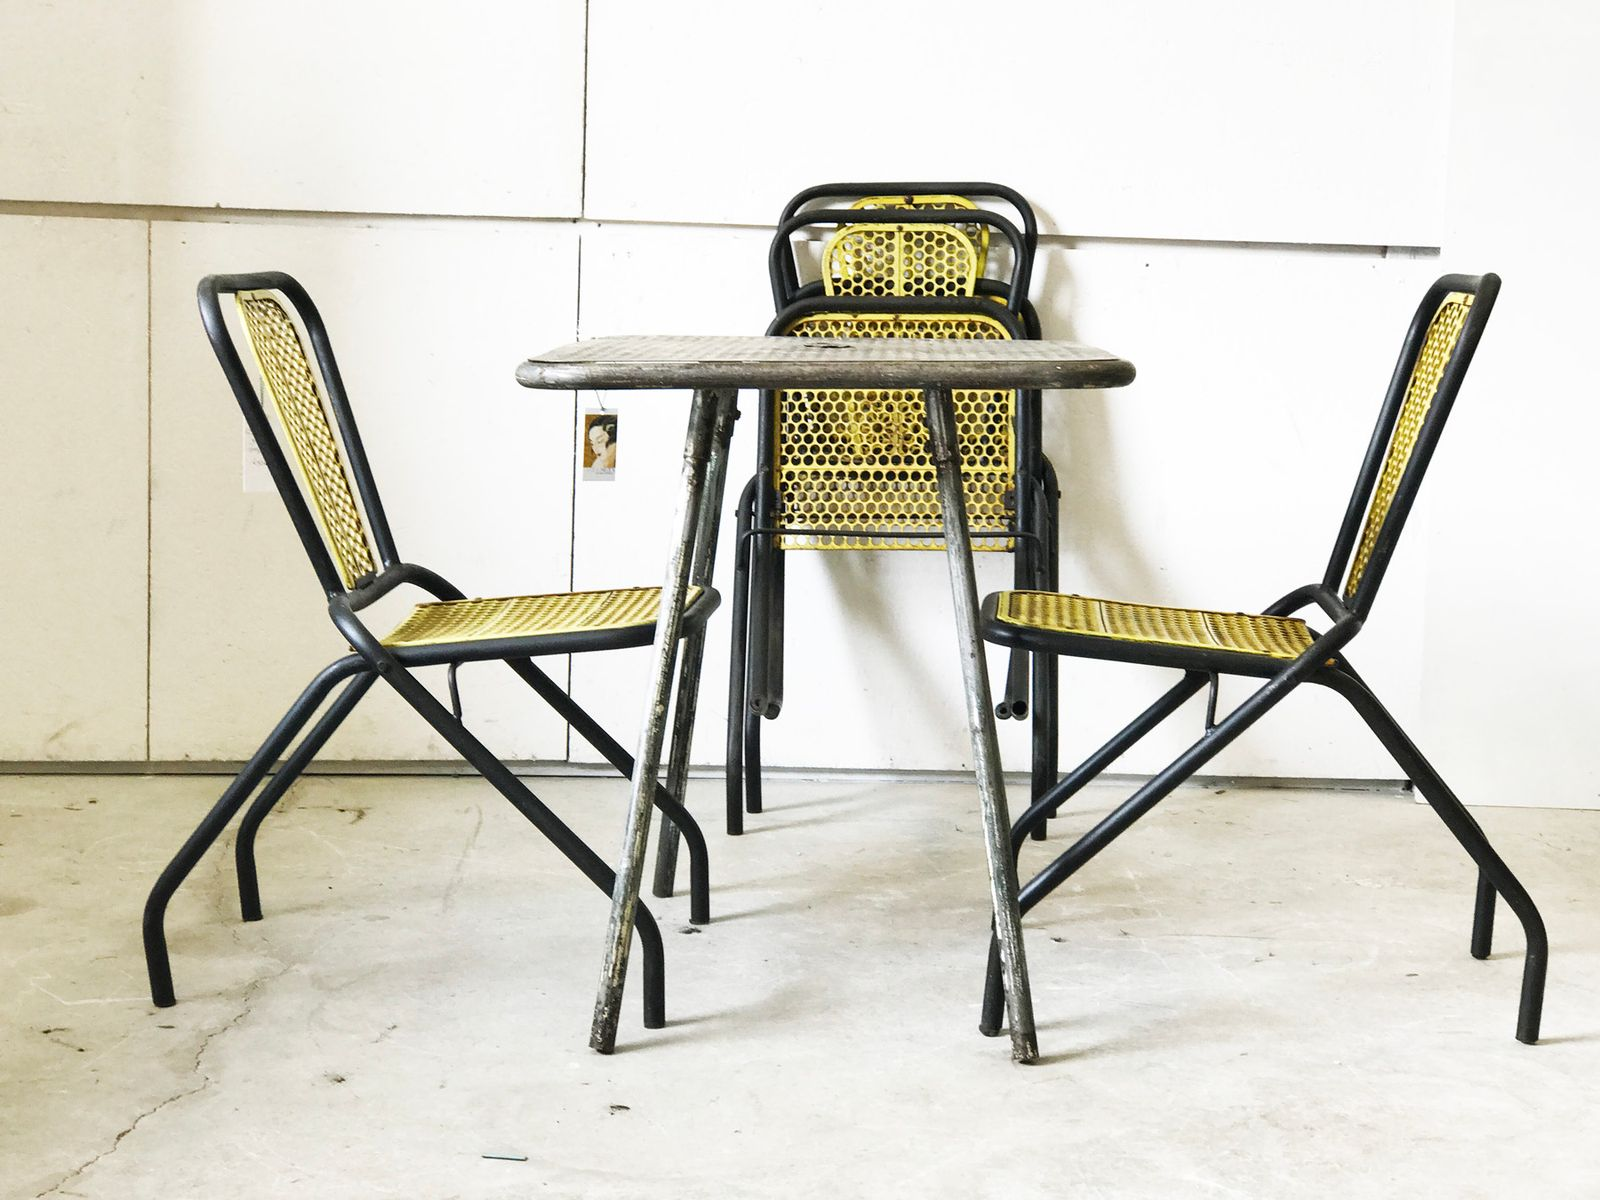 Tubular Folding Garden Chairs 1950s Set of 4 for sale at Pamono